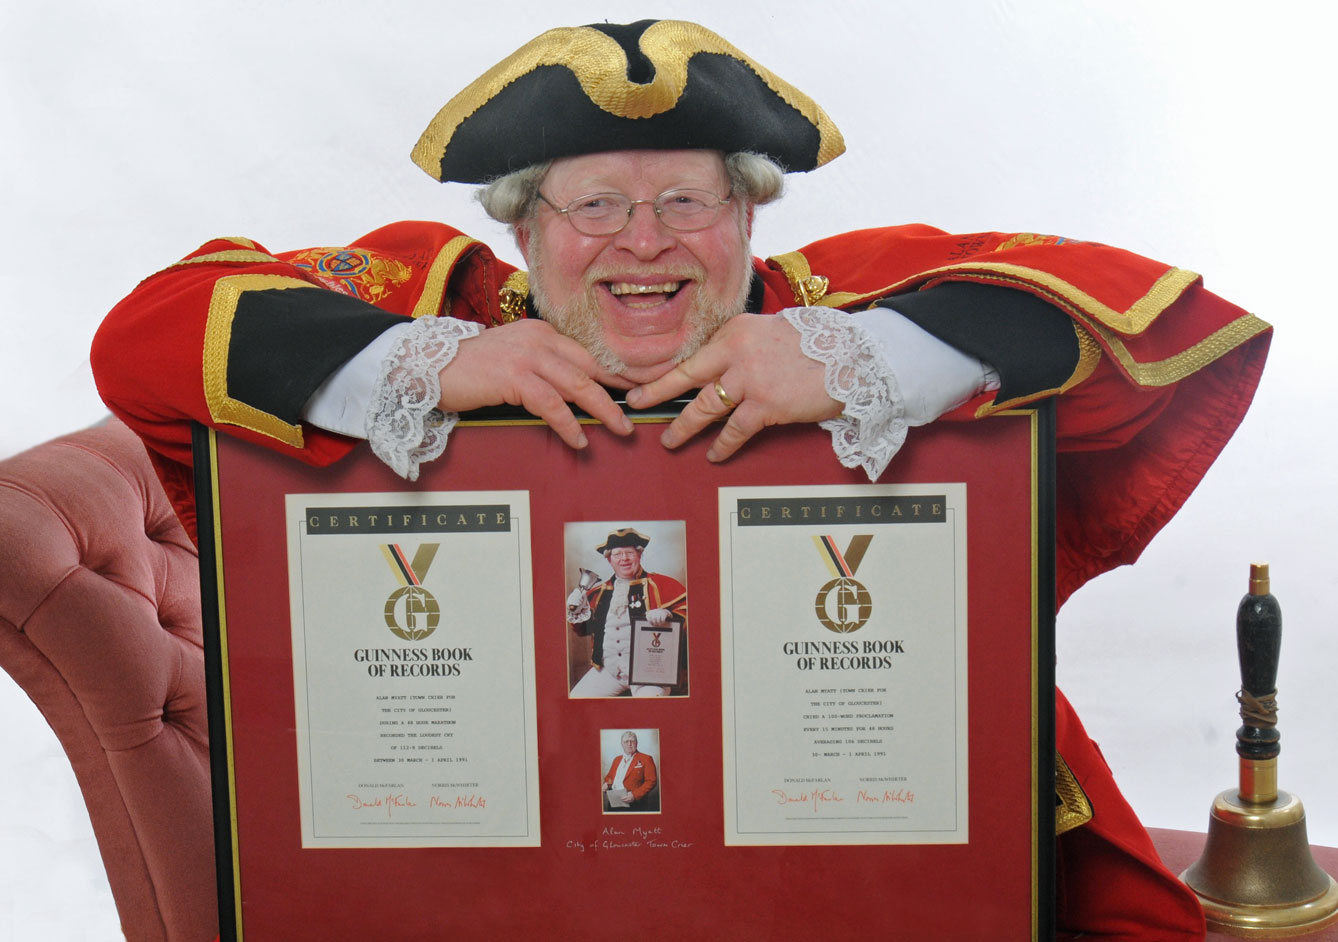 Alan Myatt with his Guinness Book of Records Certificates